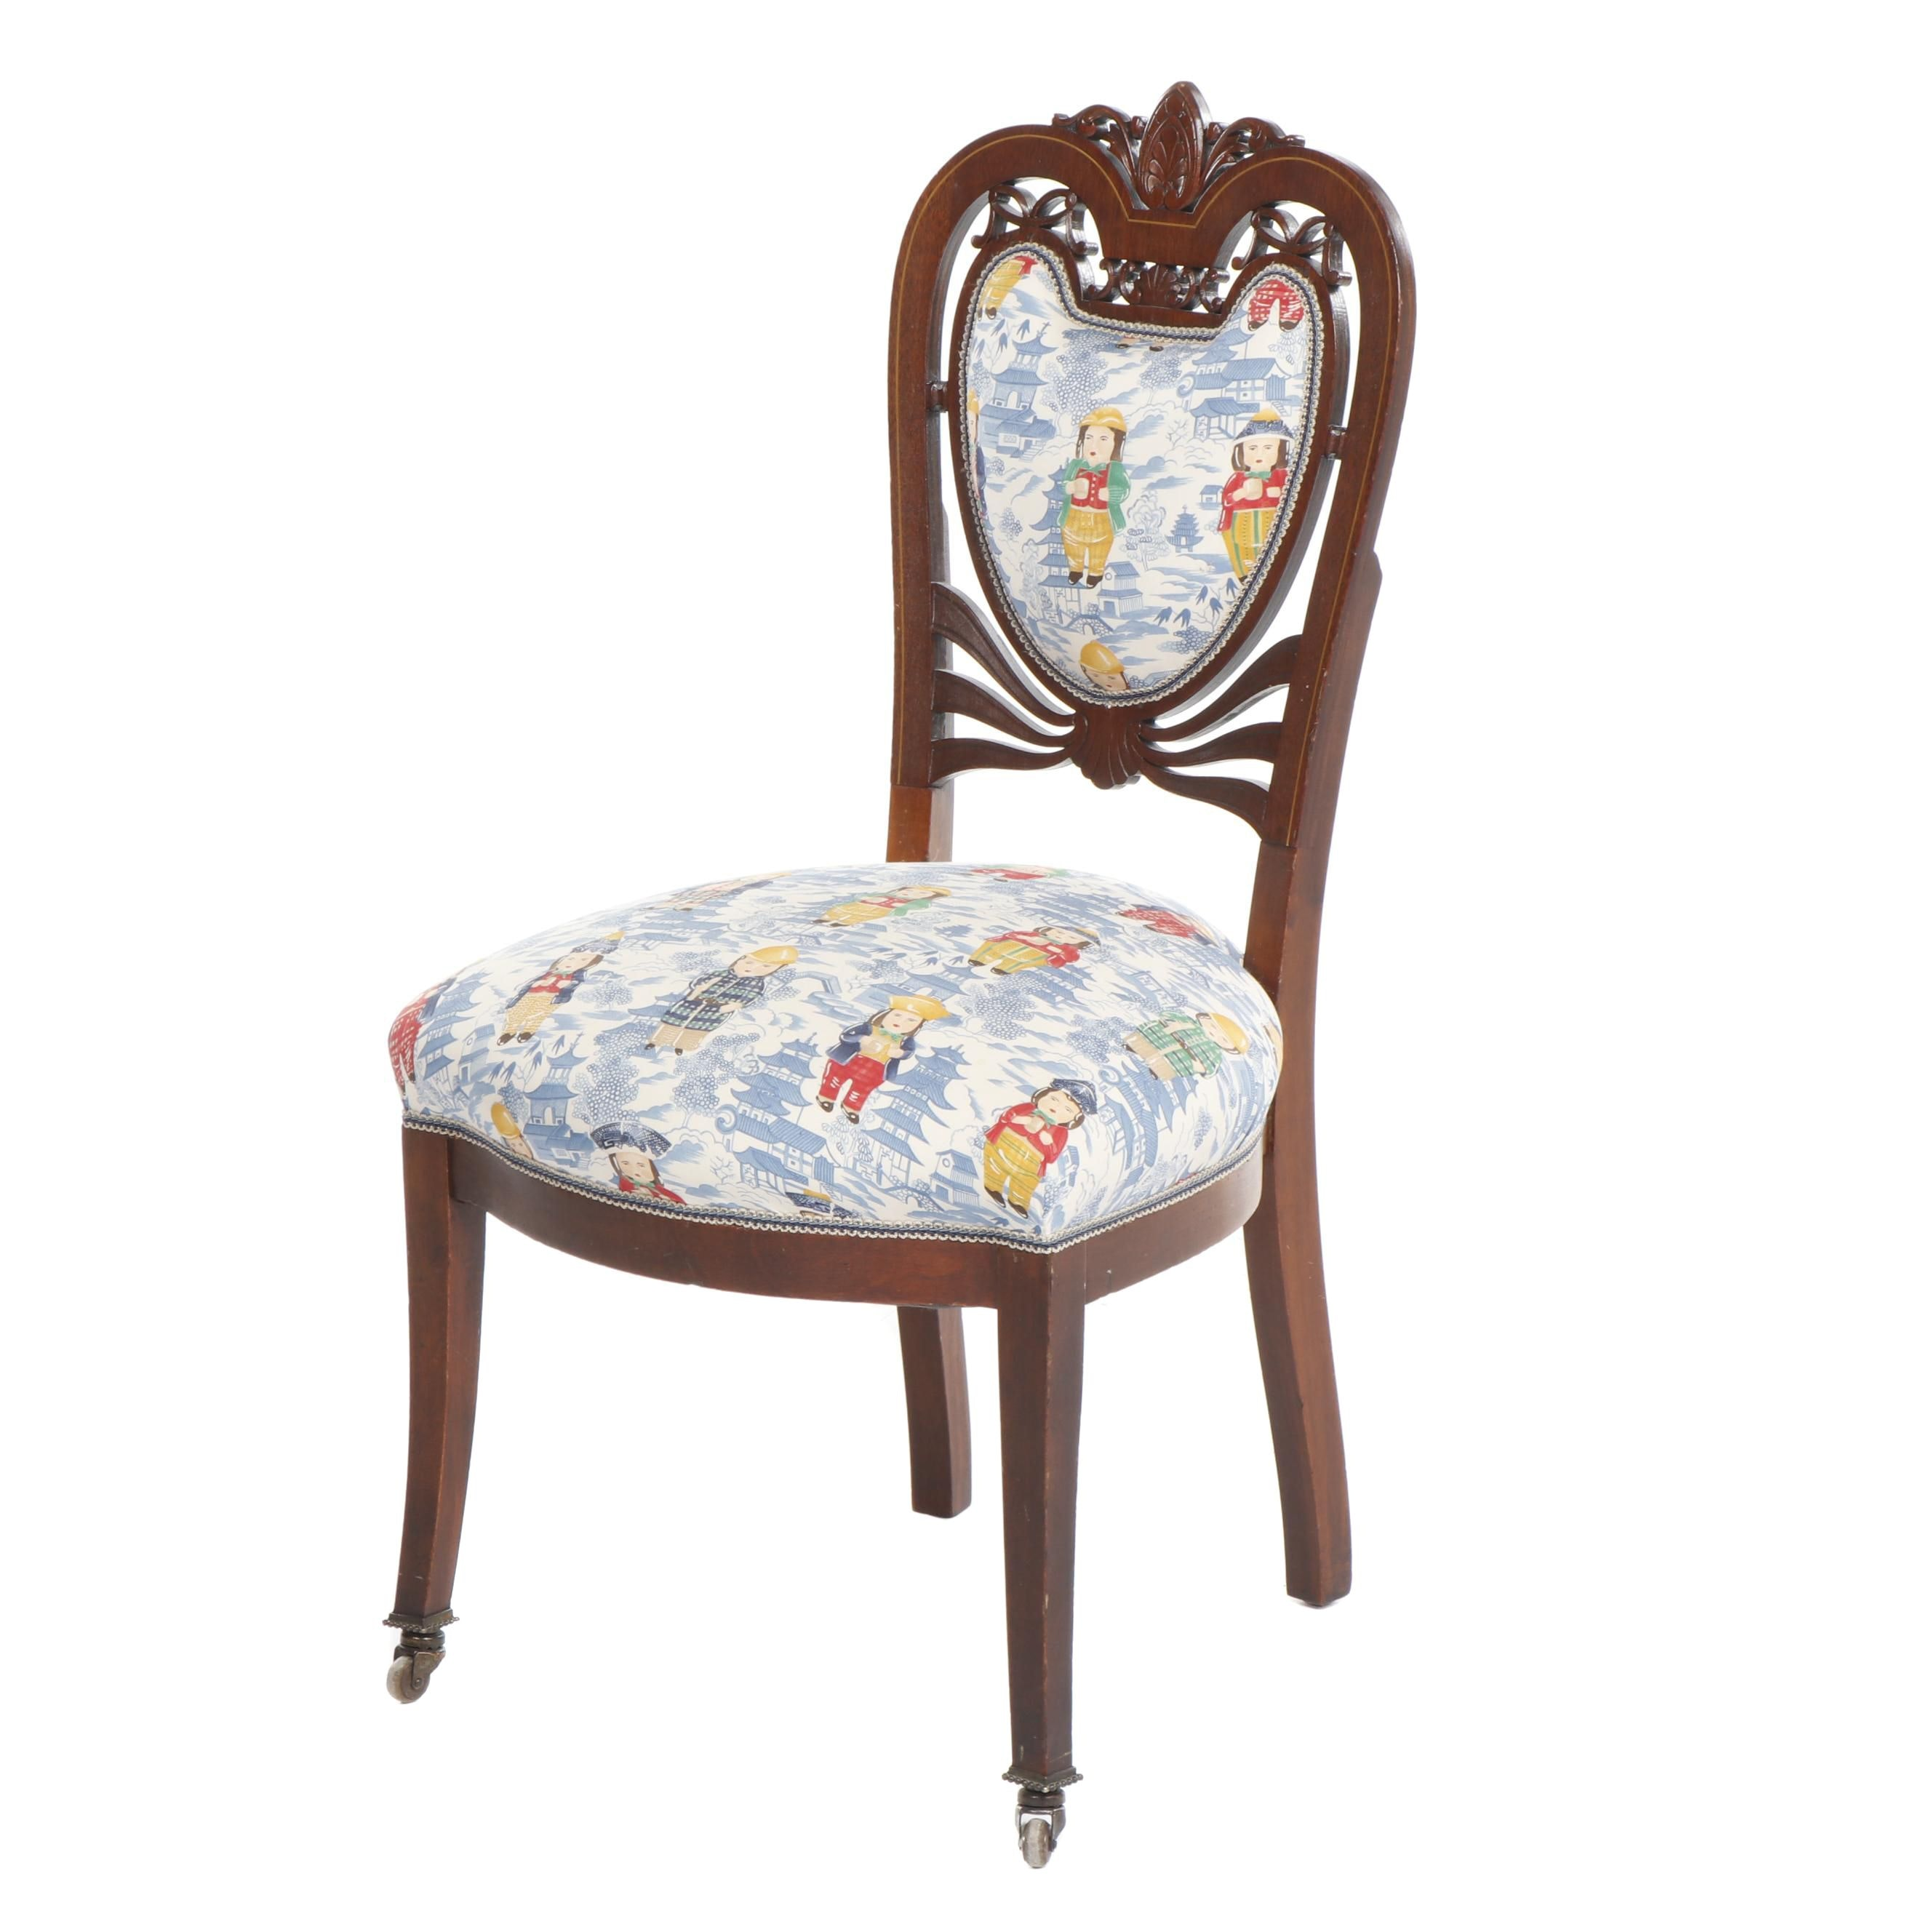 Chippendale Style Carved Mahogany Chair with Upholstered Seat and Back